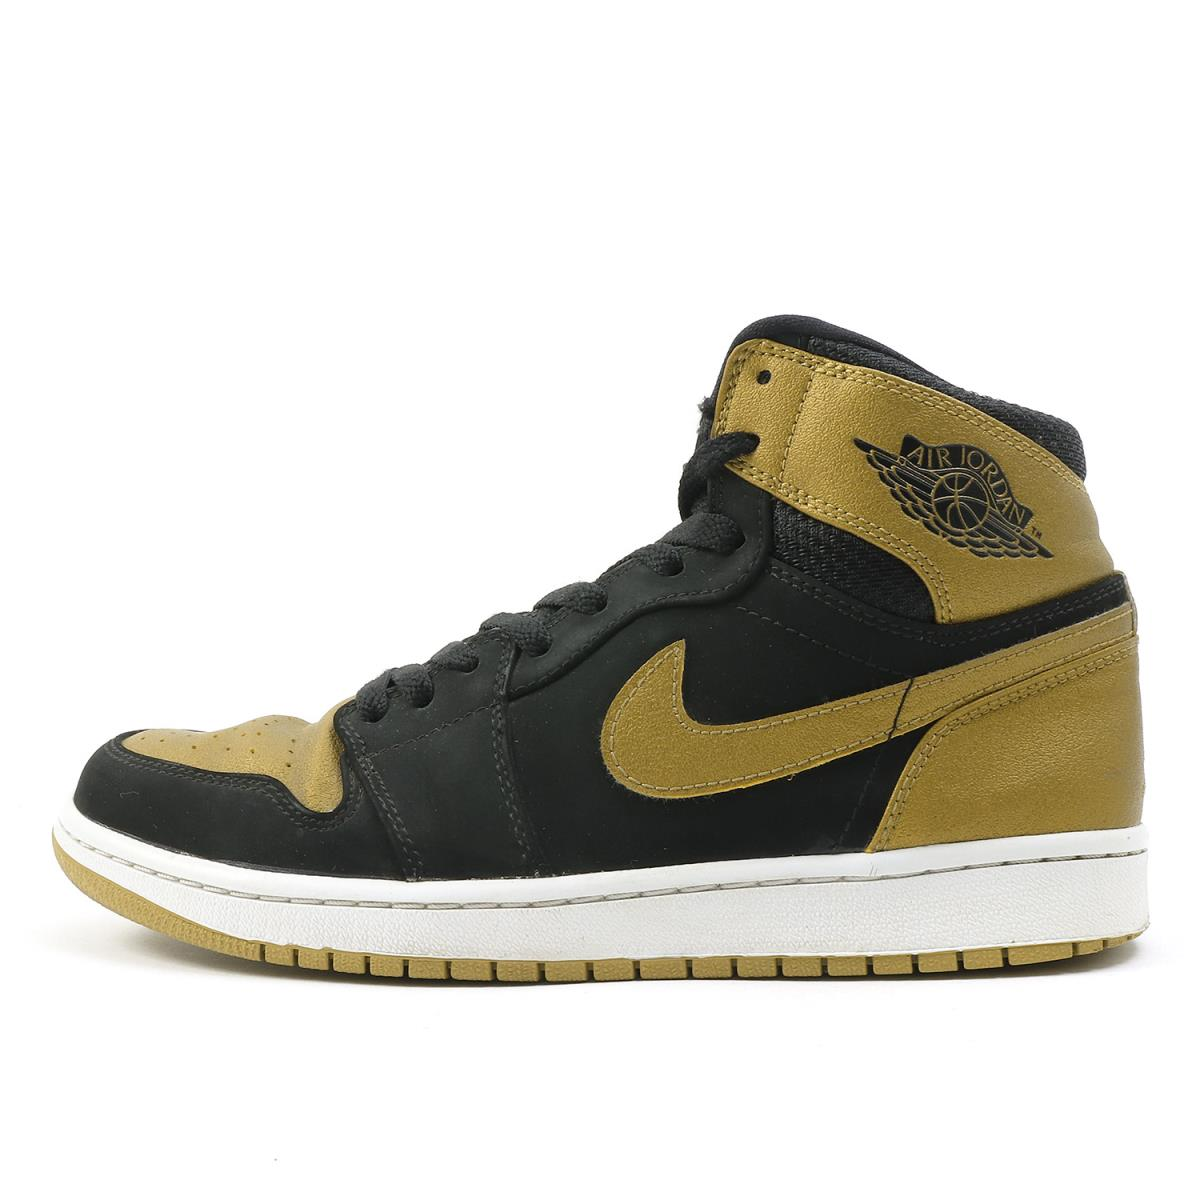 separation shoes 6ec64 63eaf NIKE (Nike) AIR JORDAN 1 RETRO HIGH CARMELO ANTHONY (332,550-026) black X metallic  gold US9(27cm)